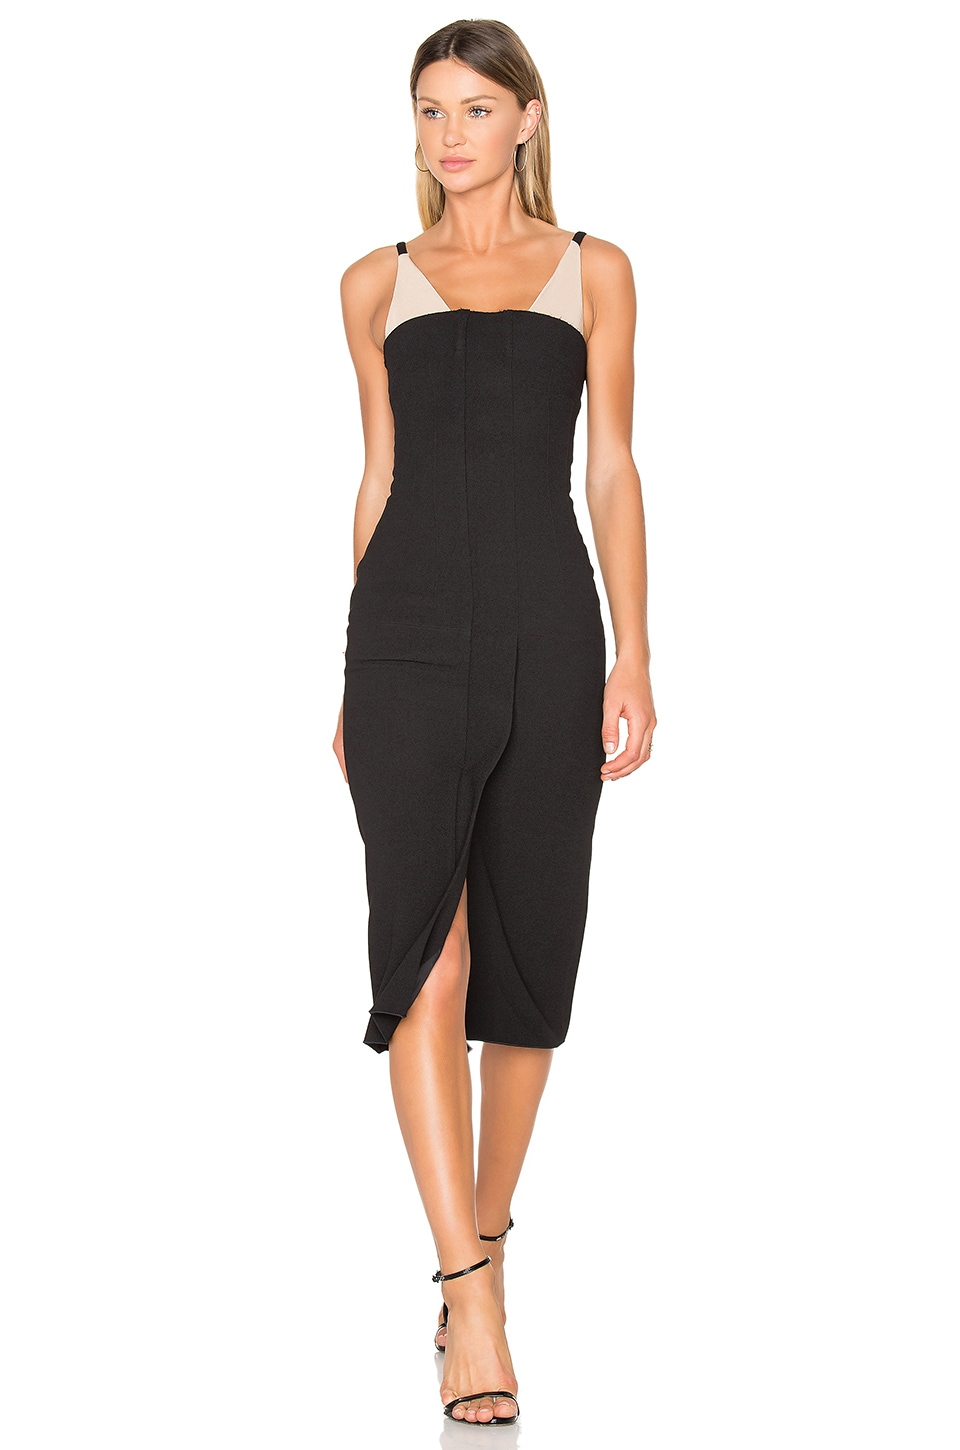 Photo of Ribbed Inner Contour Dress by Christopher Esber on sale